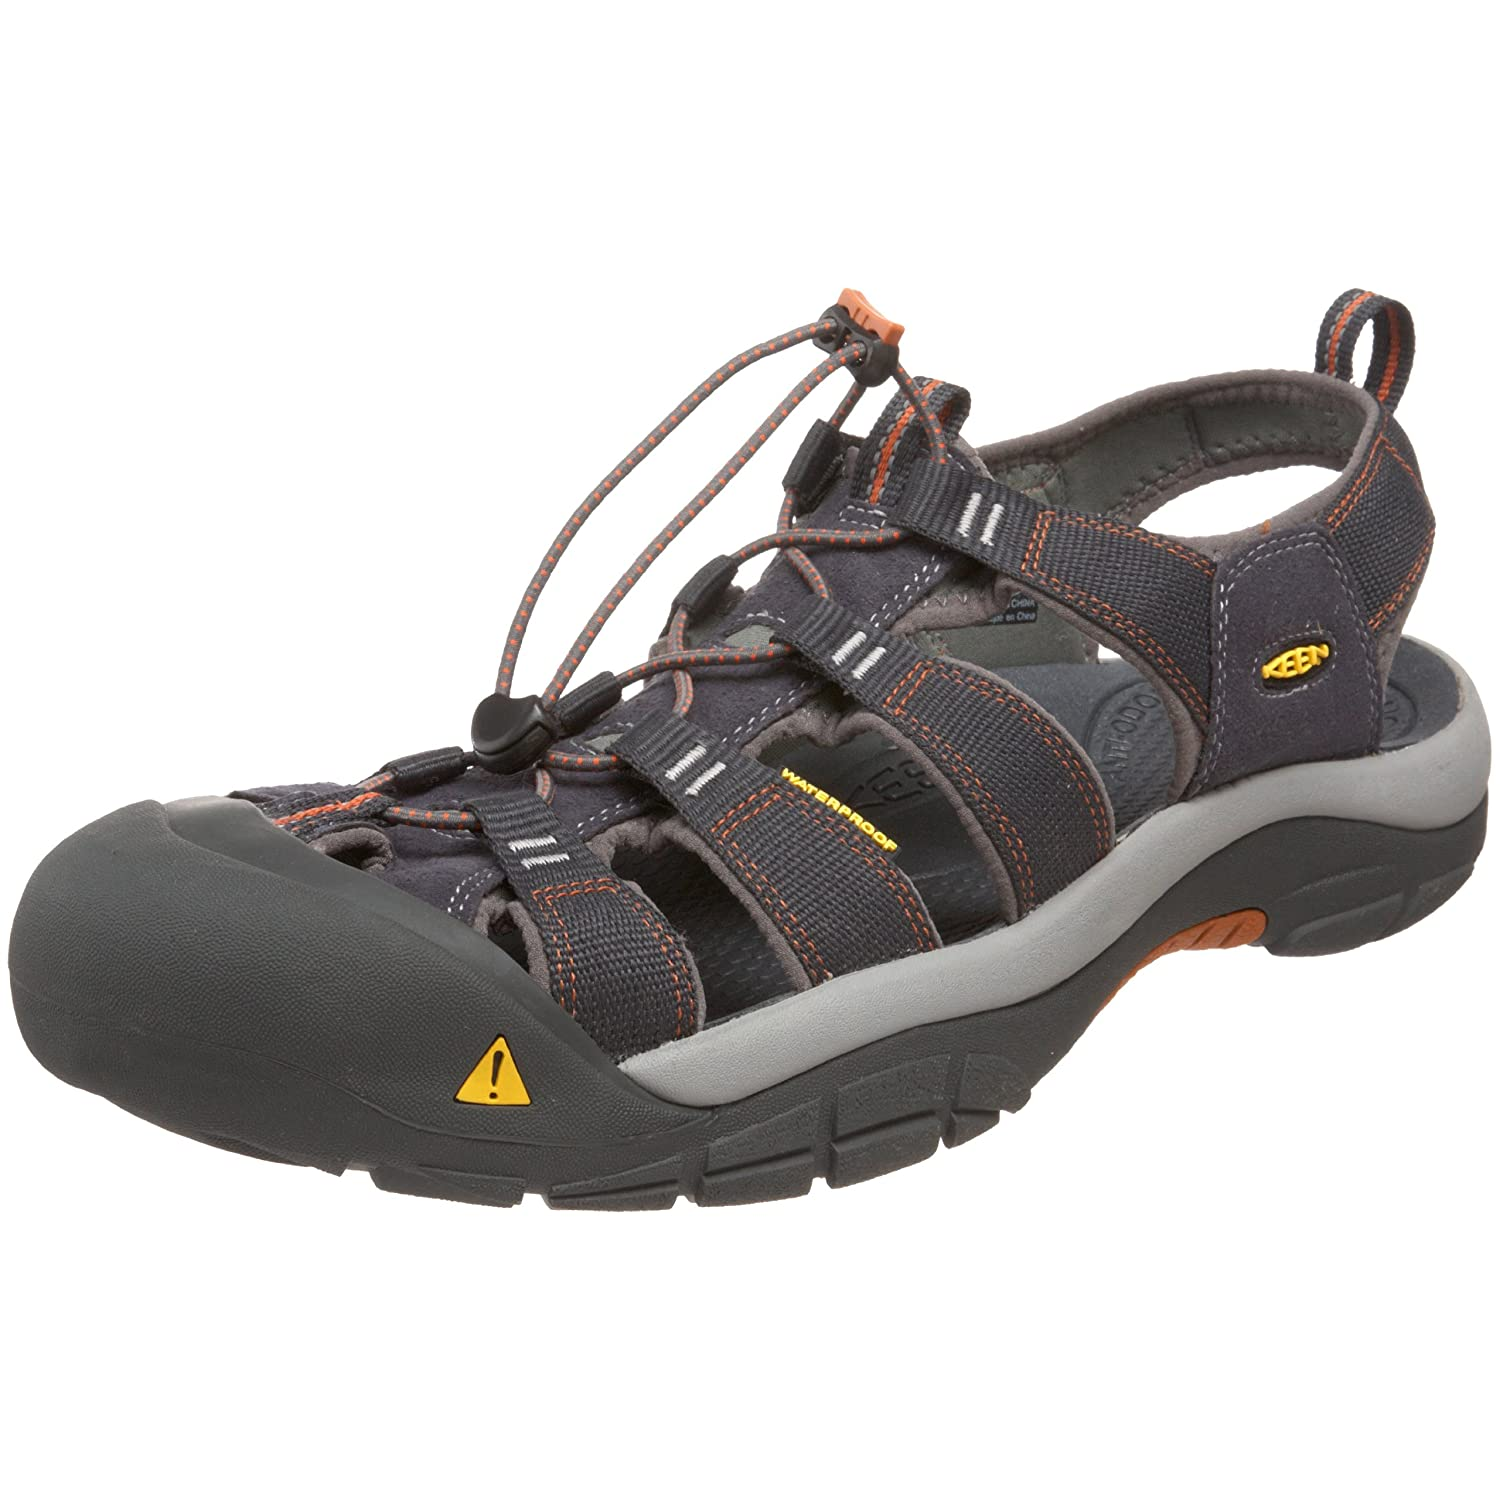 KEEN Men's Newport H2 Sandal B0035K1U92 15 D(M) US|India Ink/Rust